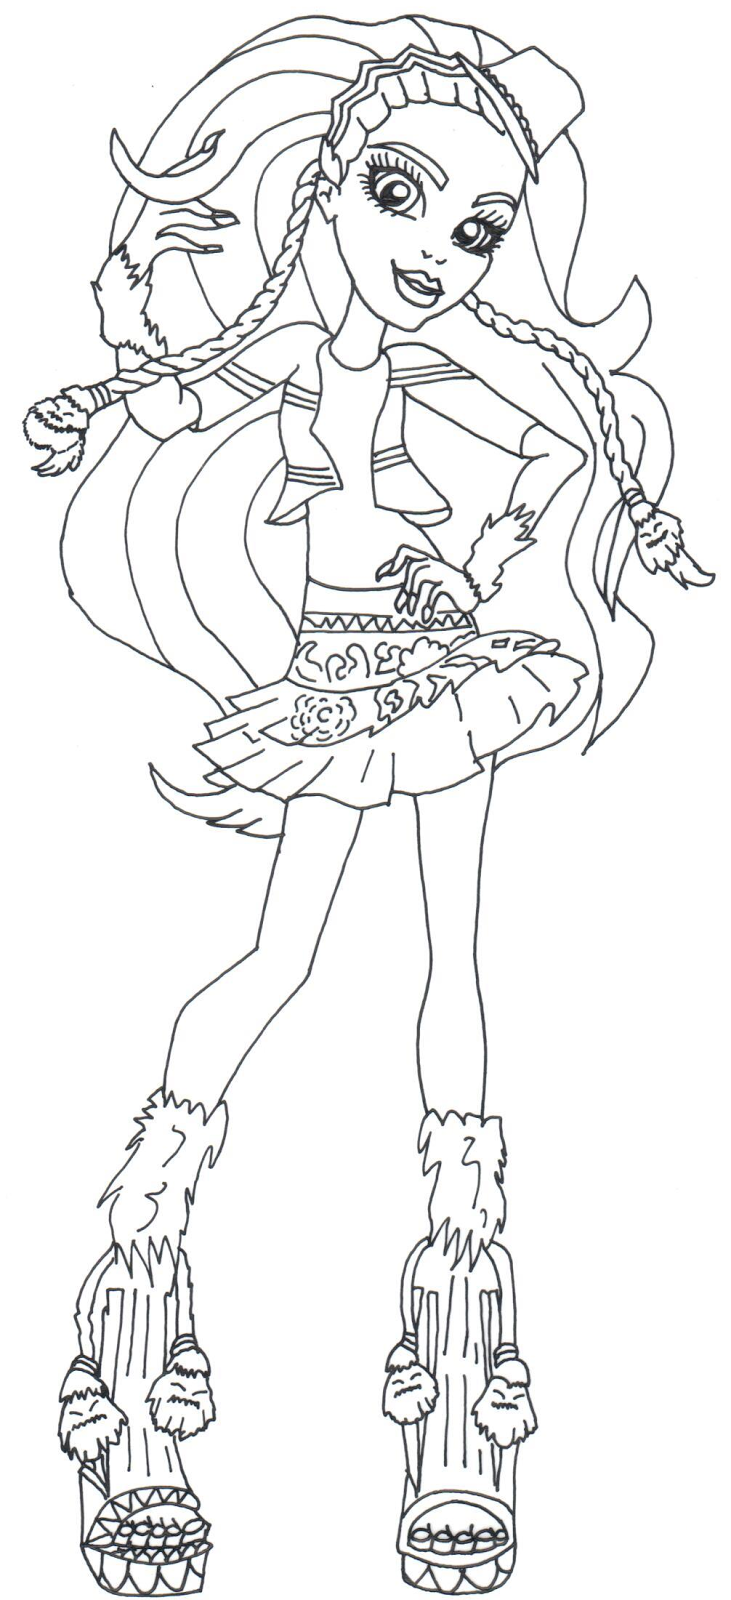 Free Printable Monster High Coloring Pages March 2014 Monster Coloring Pages Cartoon Coloring Pages Coloring Pages